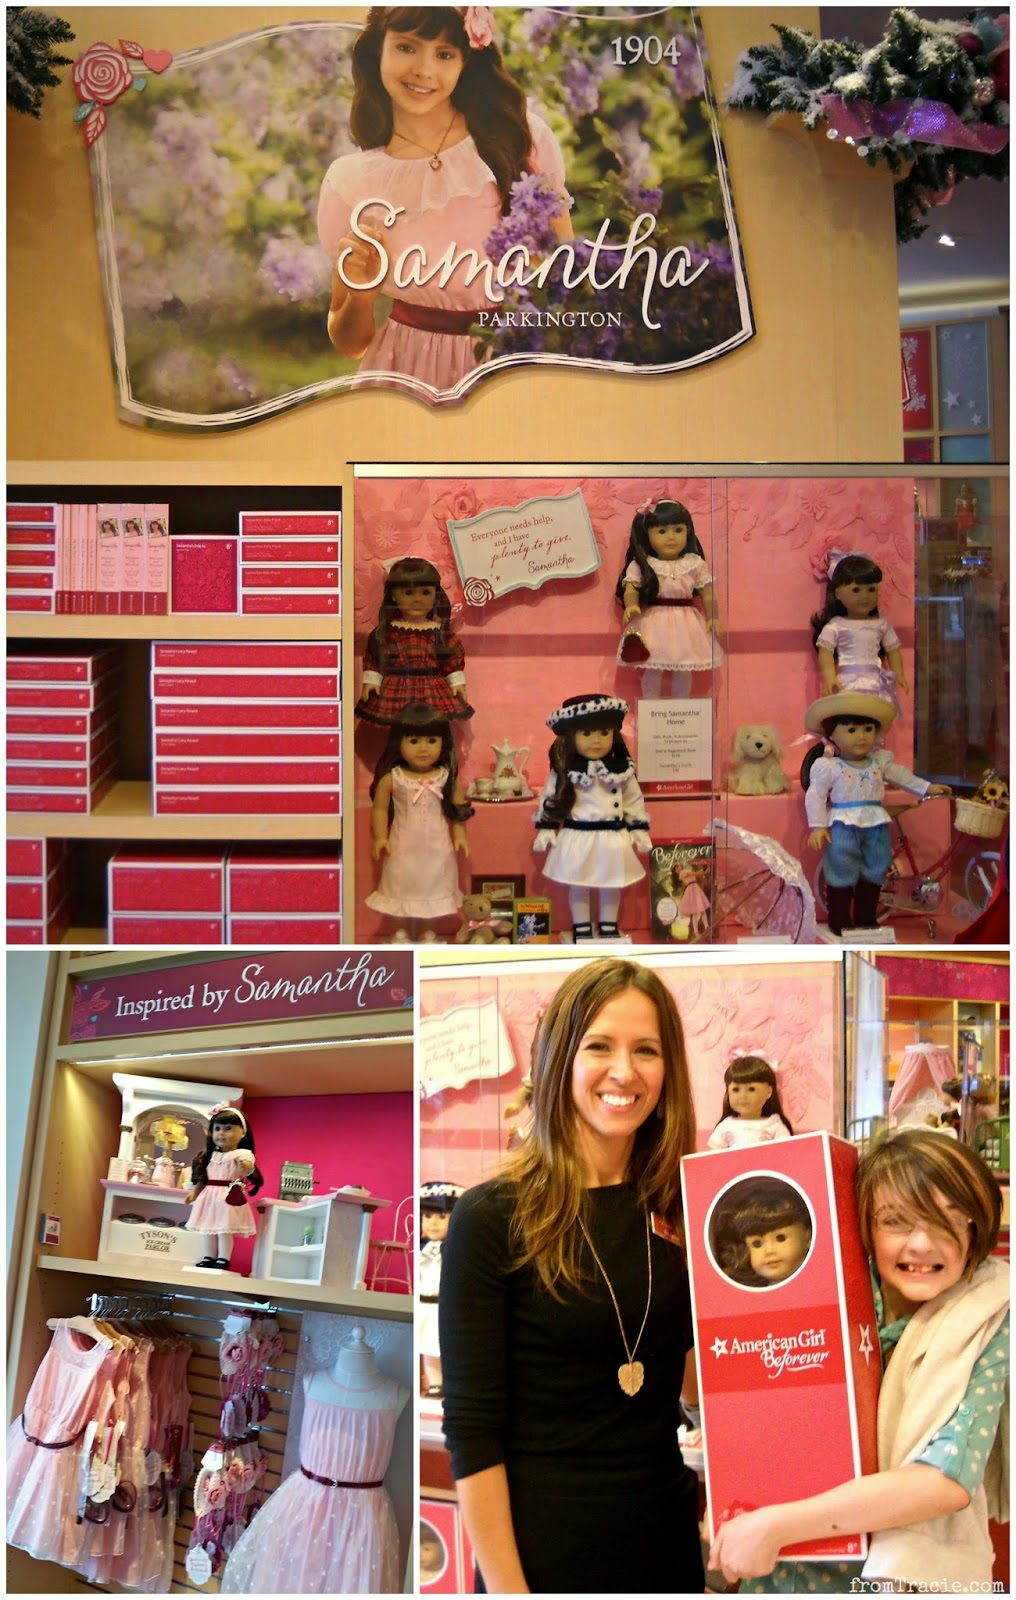 Samantha Parkington is released from the American Girl archives with the new BeForever line.